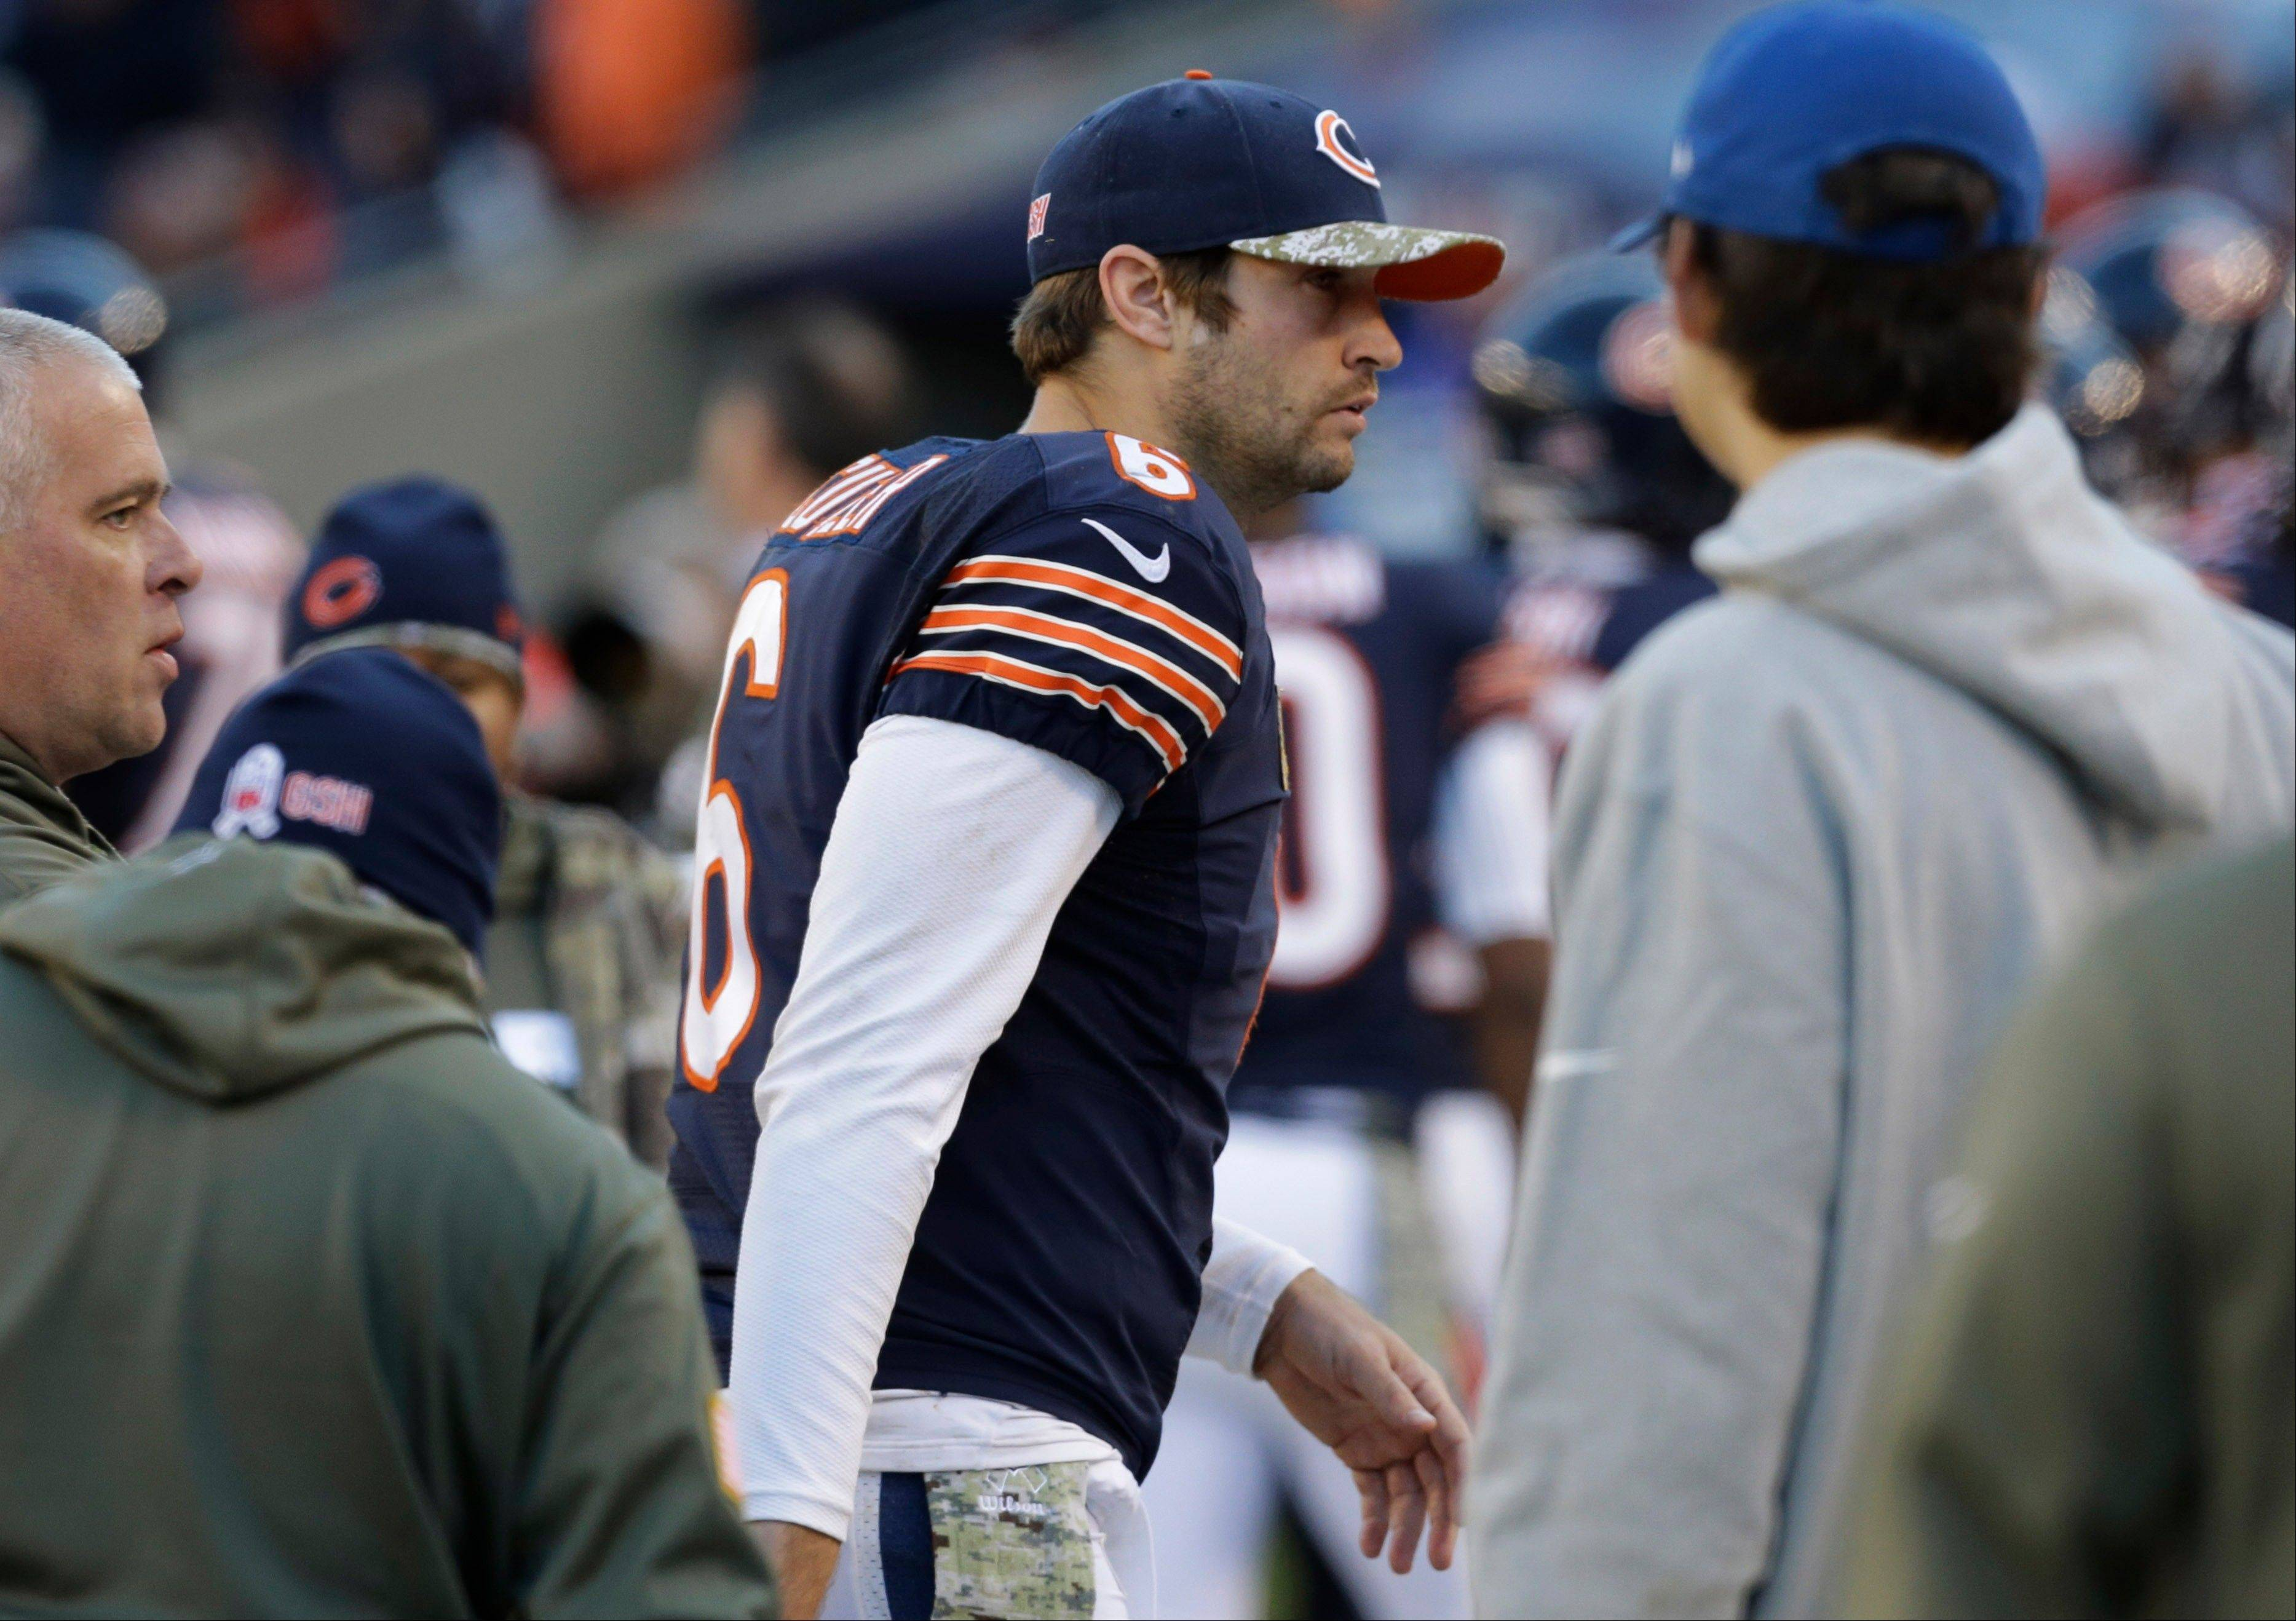 Bears quarterback Jay Cutler walks on the sidelines during the second half of an NFL football game against the Detroit Lions, Sunday, Nov. 10, 2013, in Chicago. The Lions won 21-19.